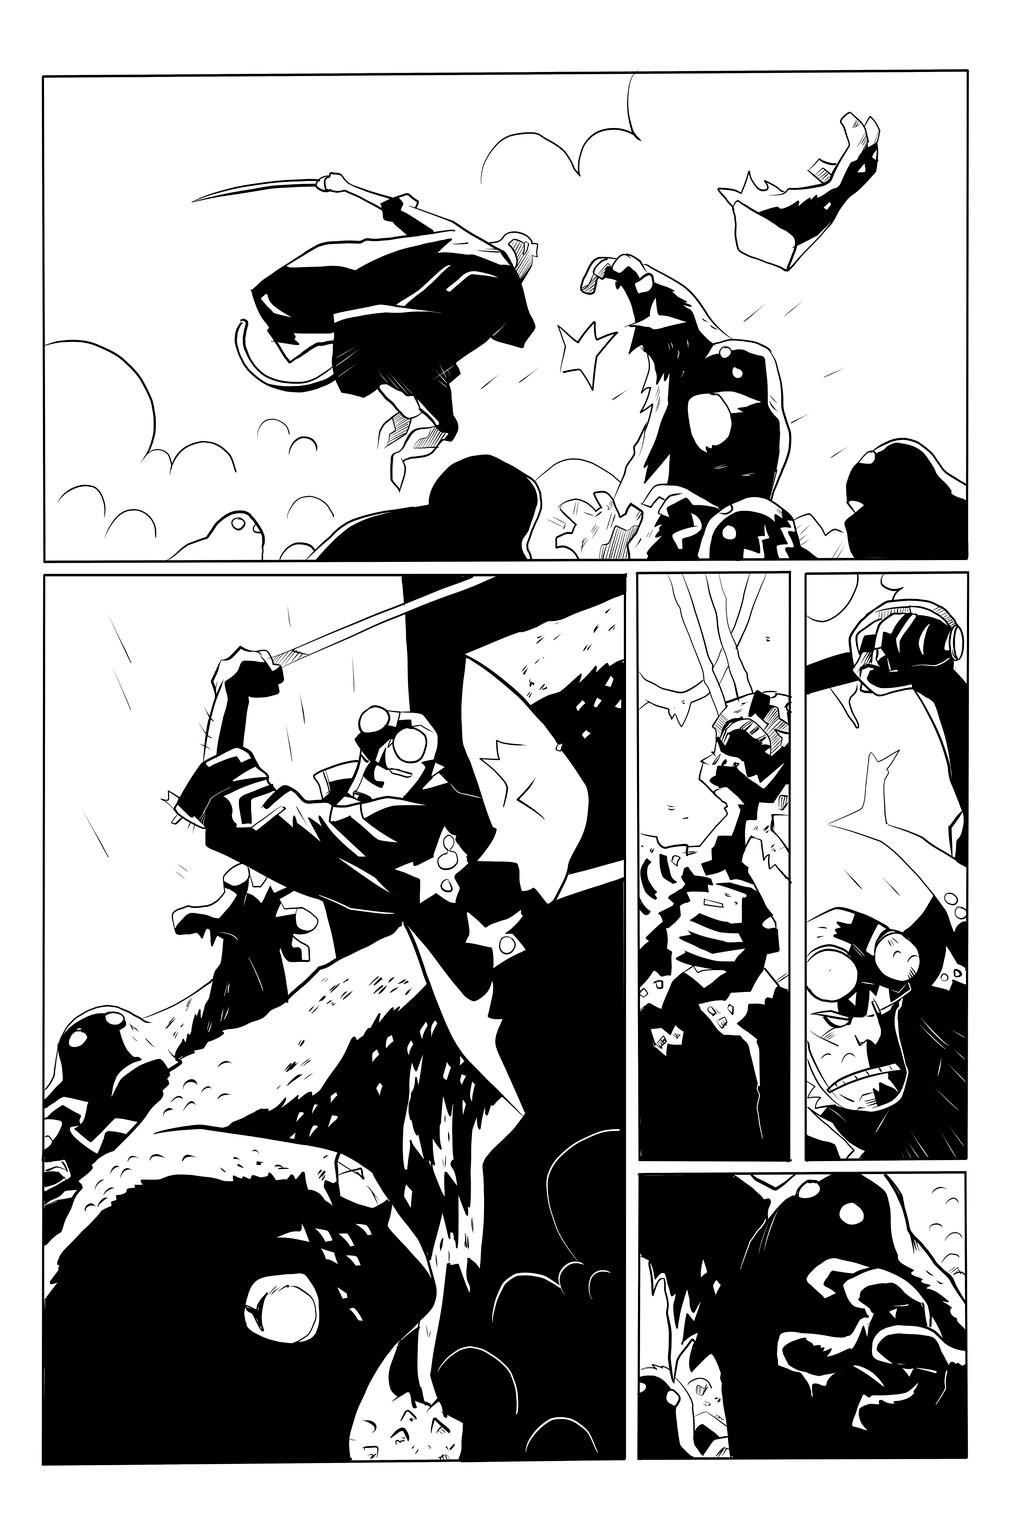 Hellboy - The Island Sample Page 5 of 5